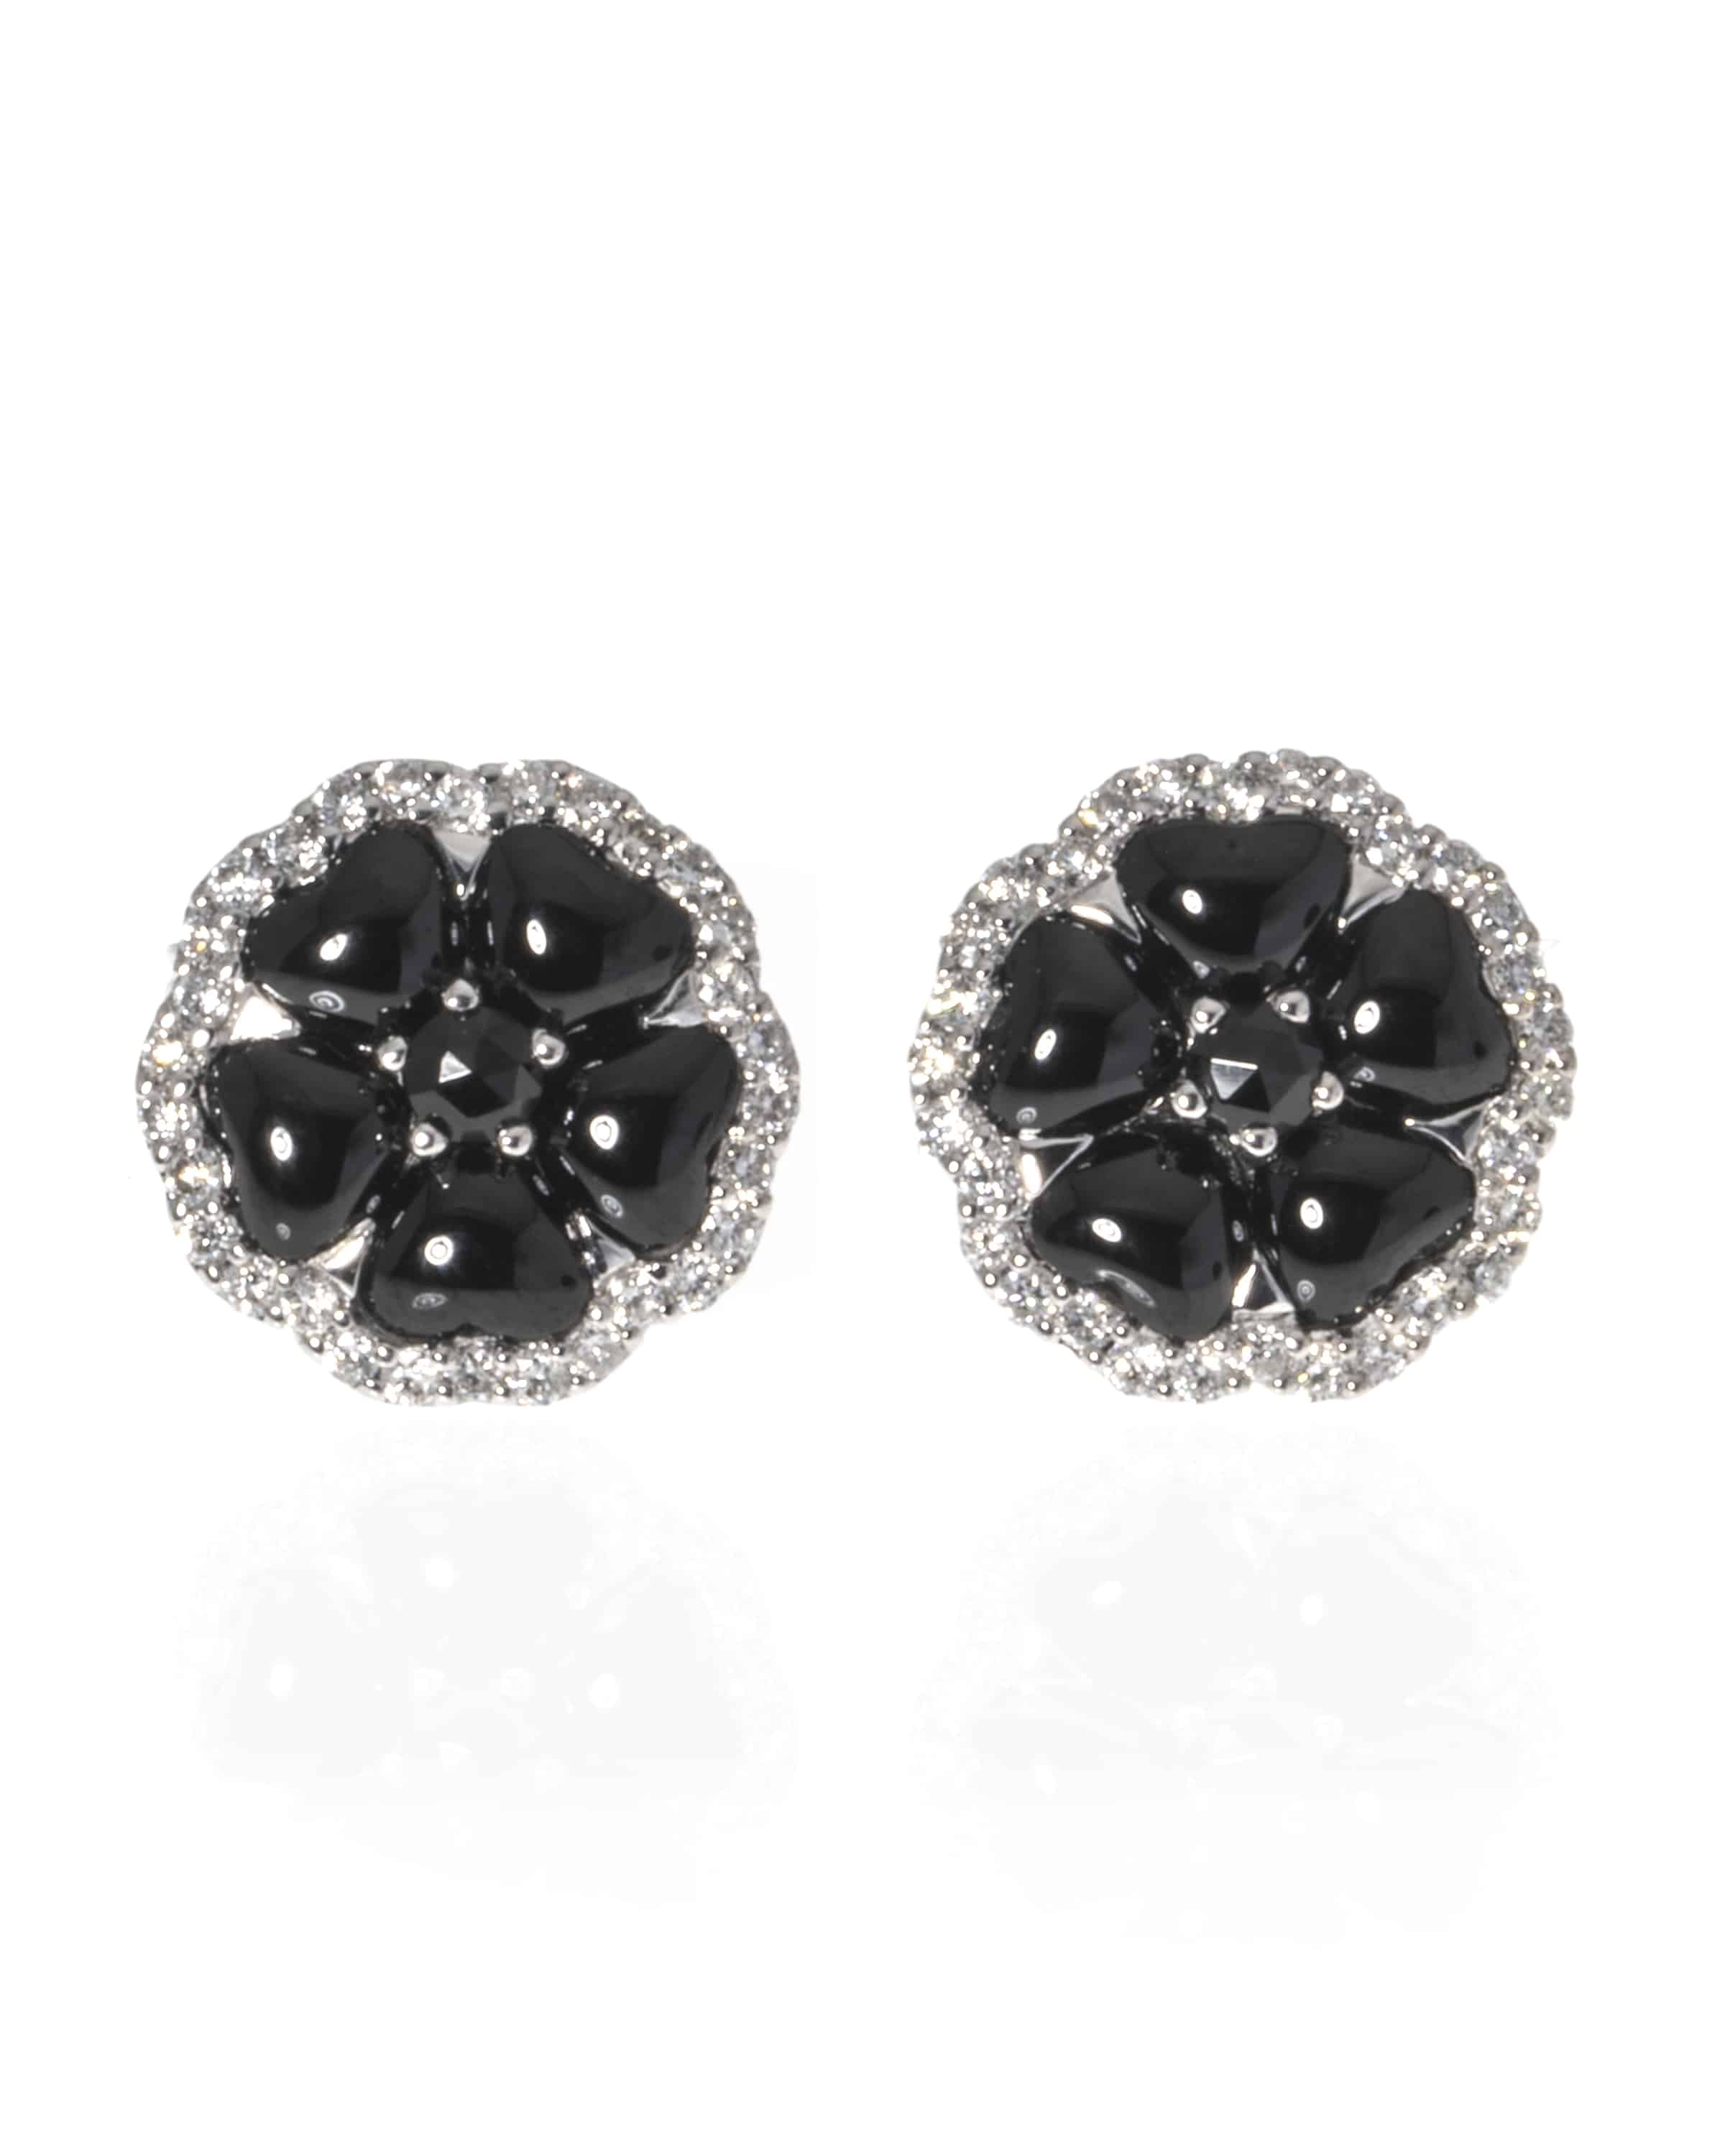 Details About Crivelli 18k White Gold Diamond And Onyx Stud Earrings 307 Te7650 84222048